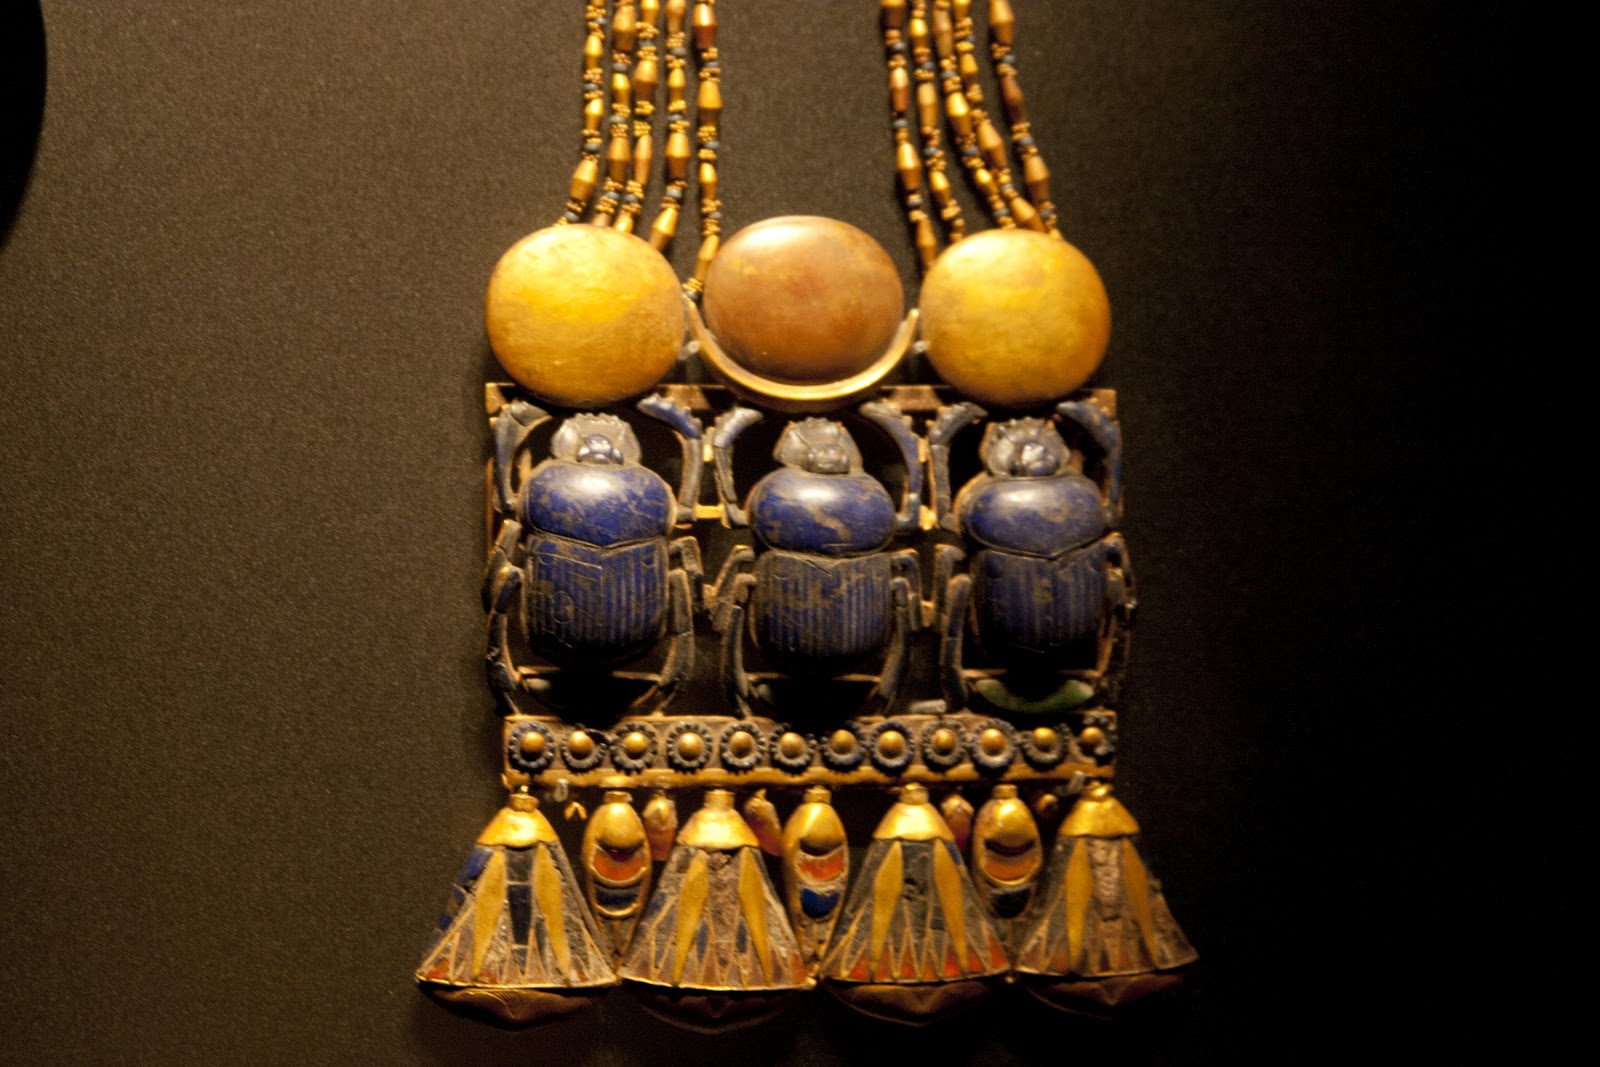 Marie Poutine's Jewels & Royals: Jewels of Ancient Egypt